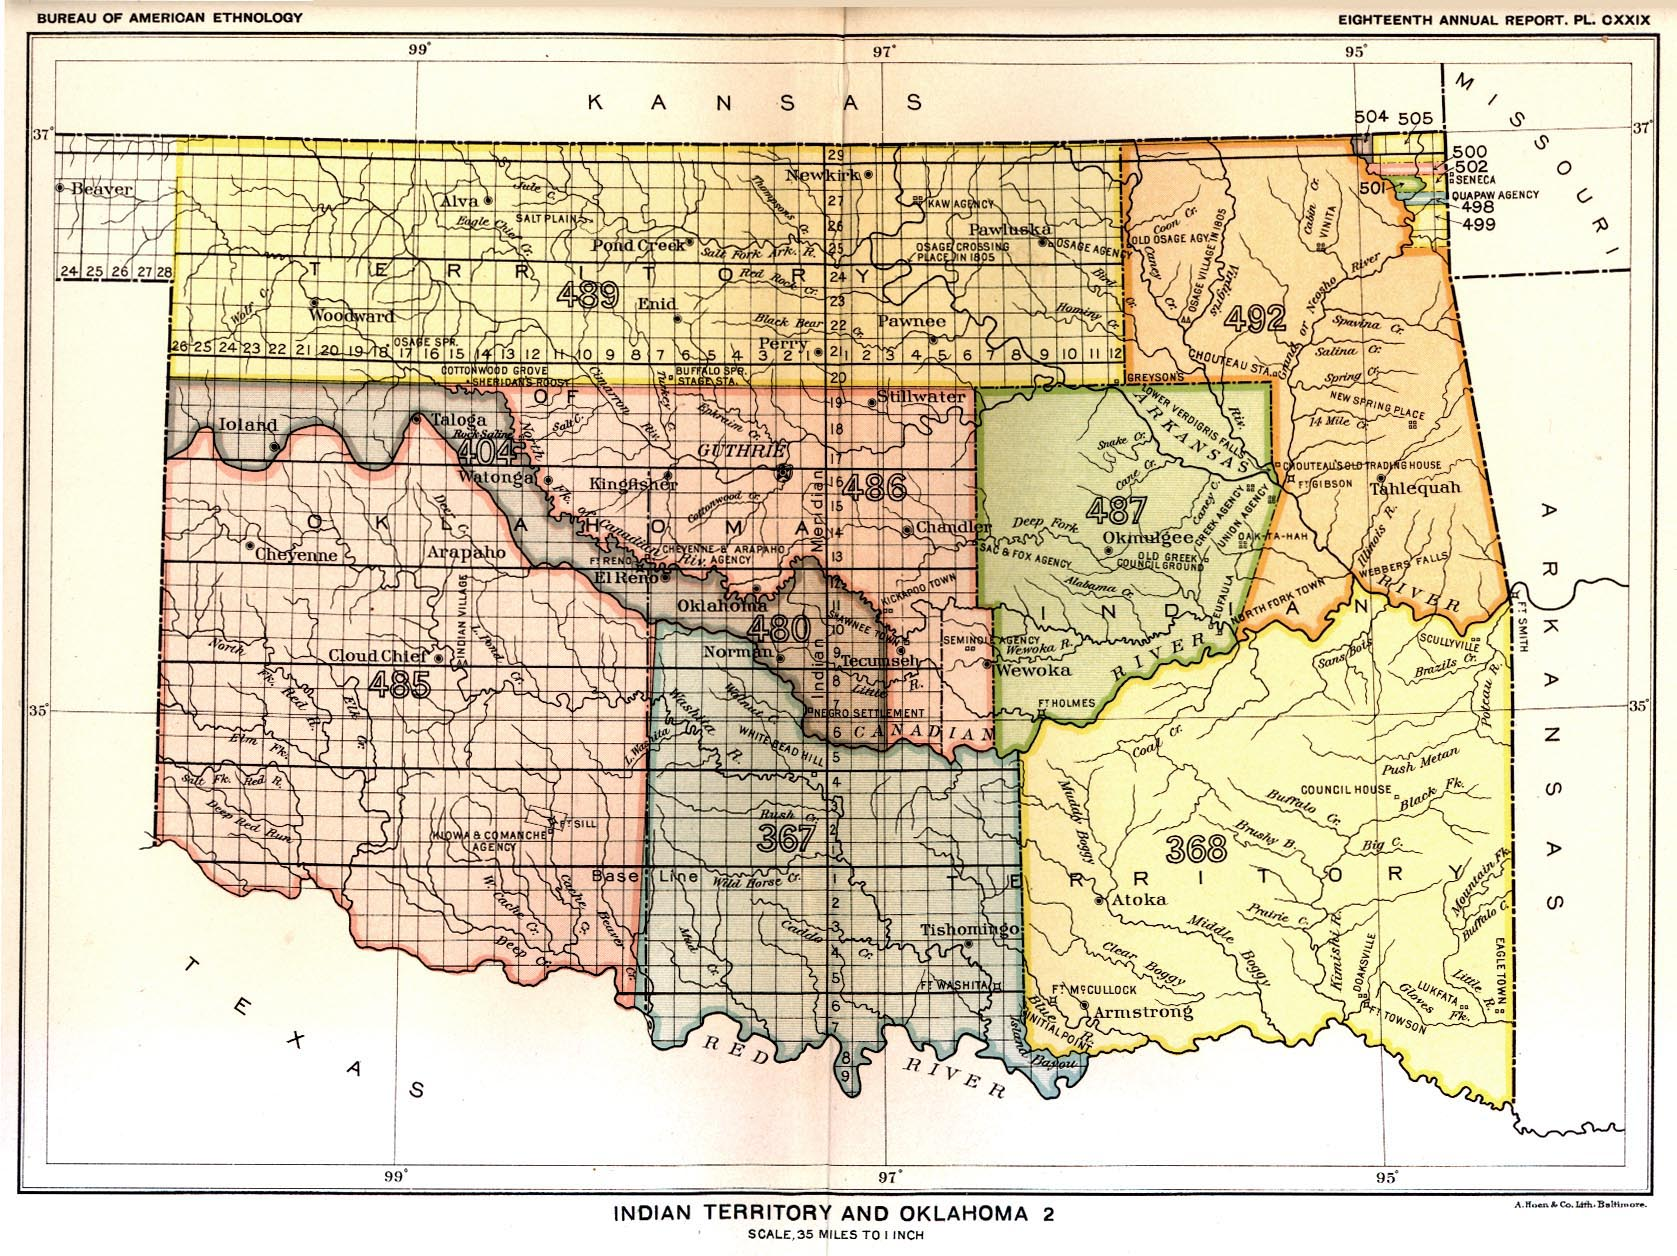 Indian Land Cessions In The U S Indian Territory Oklahoma - Oklahoma map us